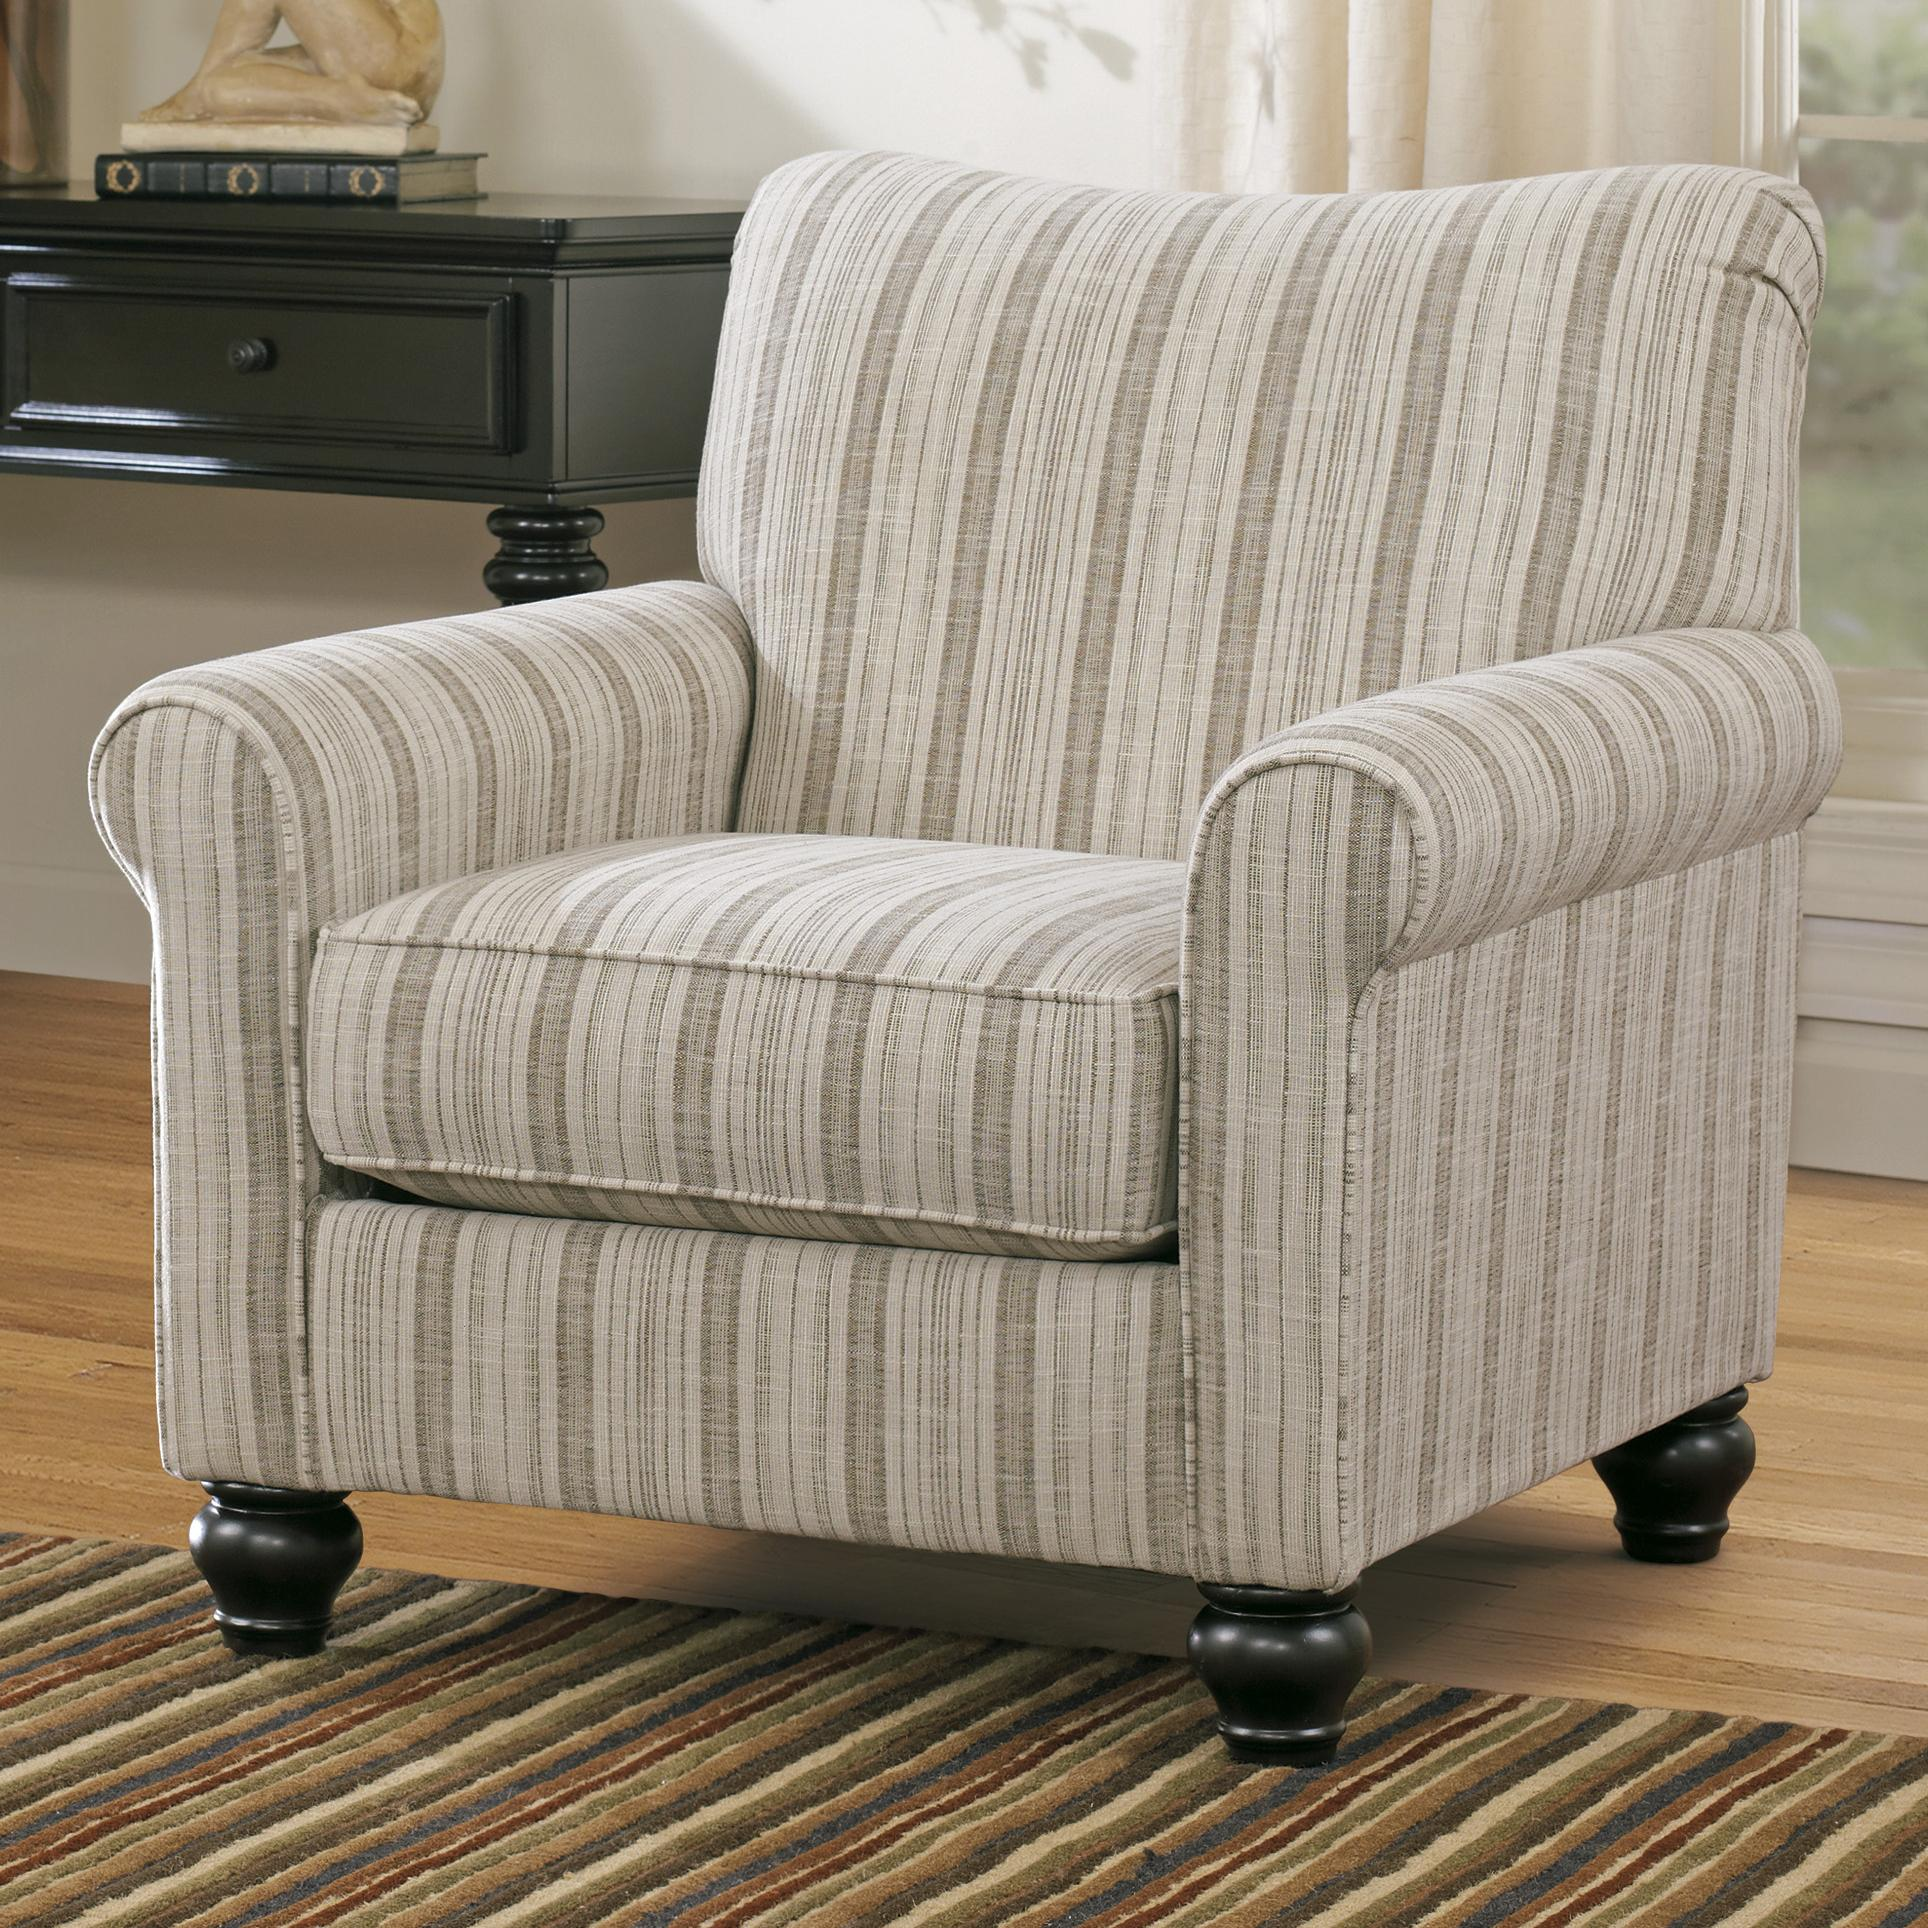 Milari Accent Chair by Signature Design at Fisher Home Furnishings